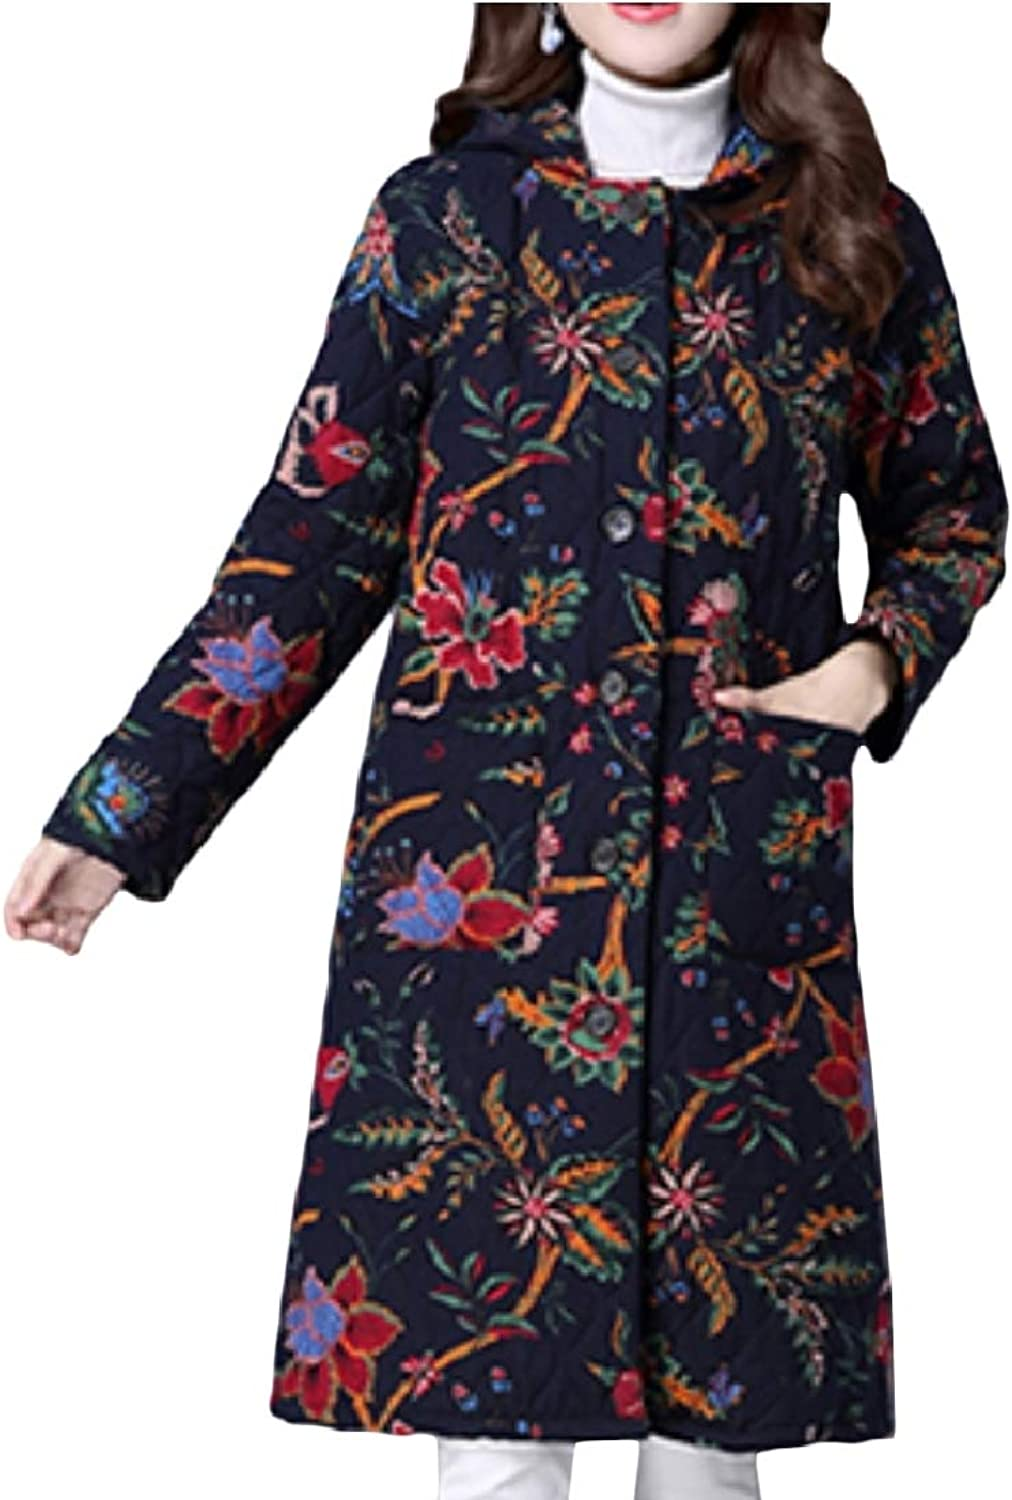 Yingshif Women Hoodie Floral Print Ethnic Maxi Cotton Padded Outwear